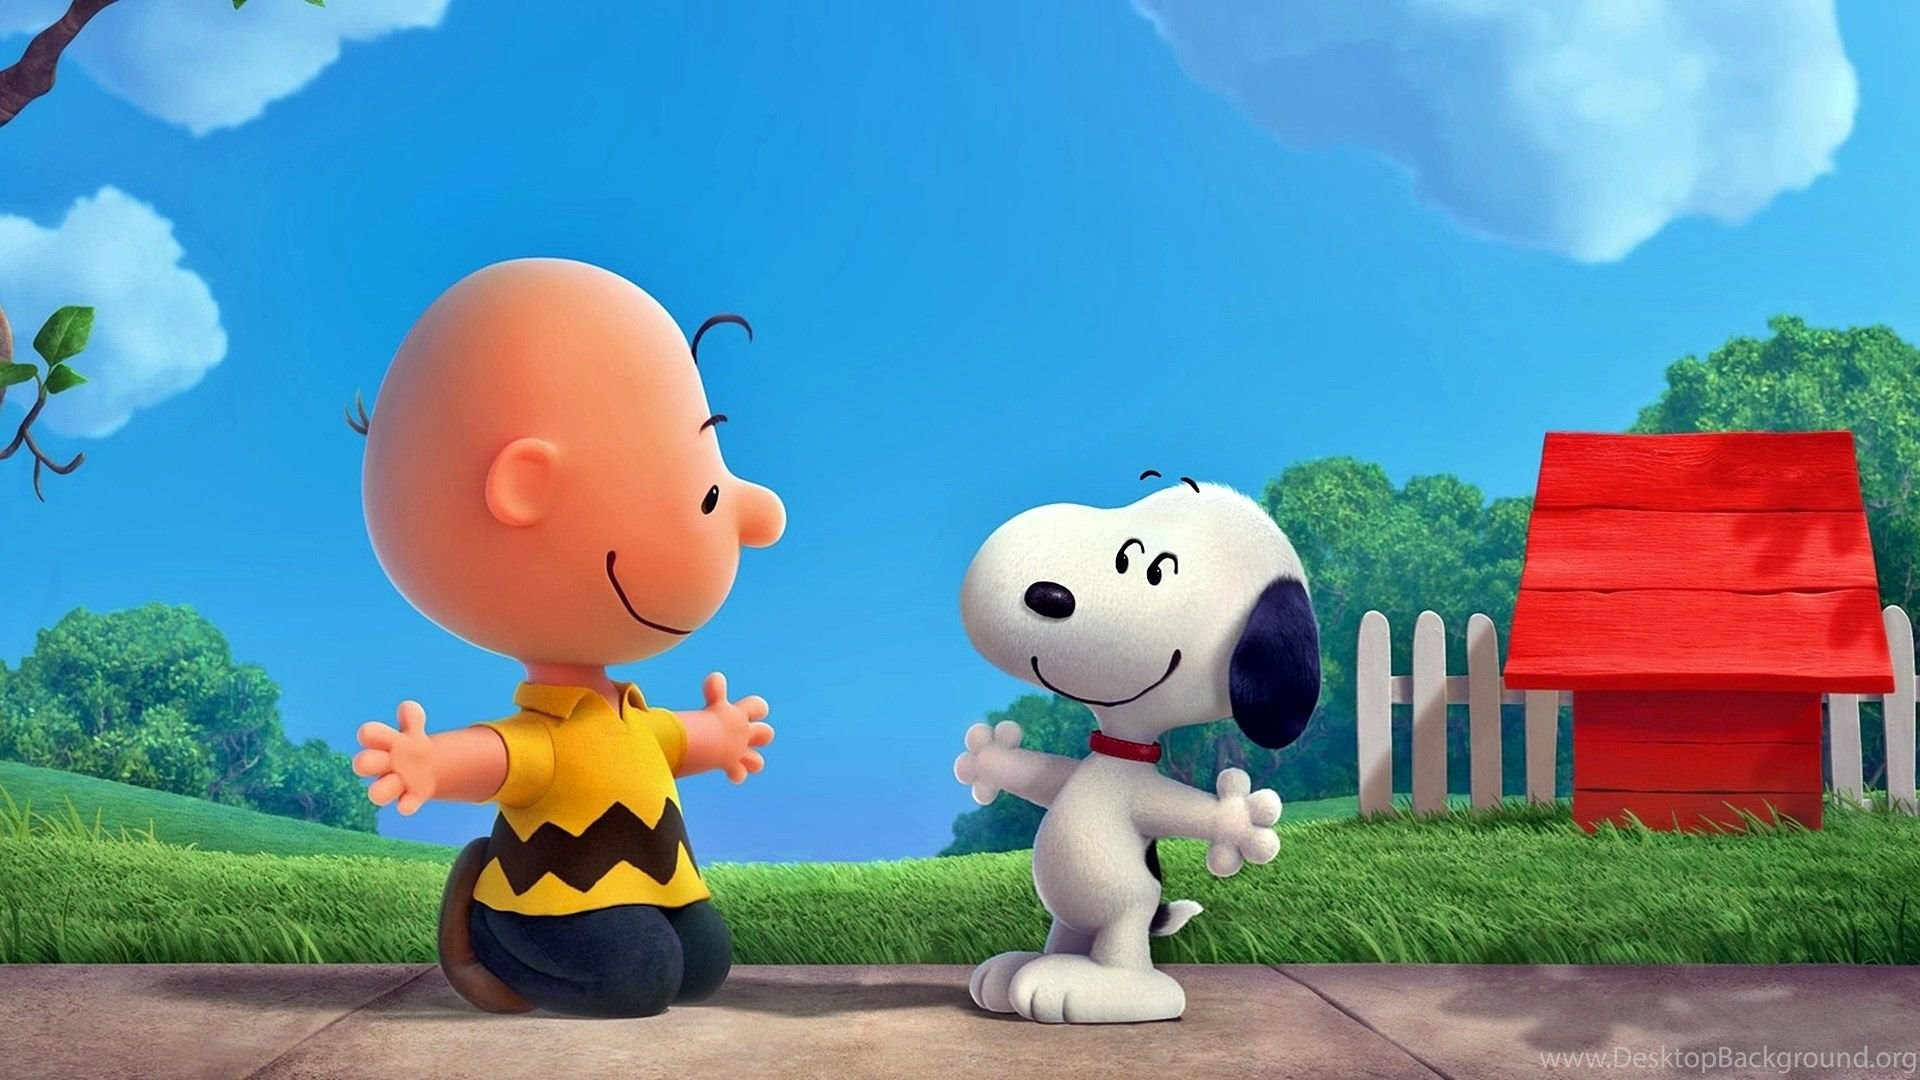 snoopy iphone 5 wallpapers for iphone ndemok desktop background